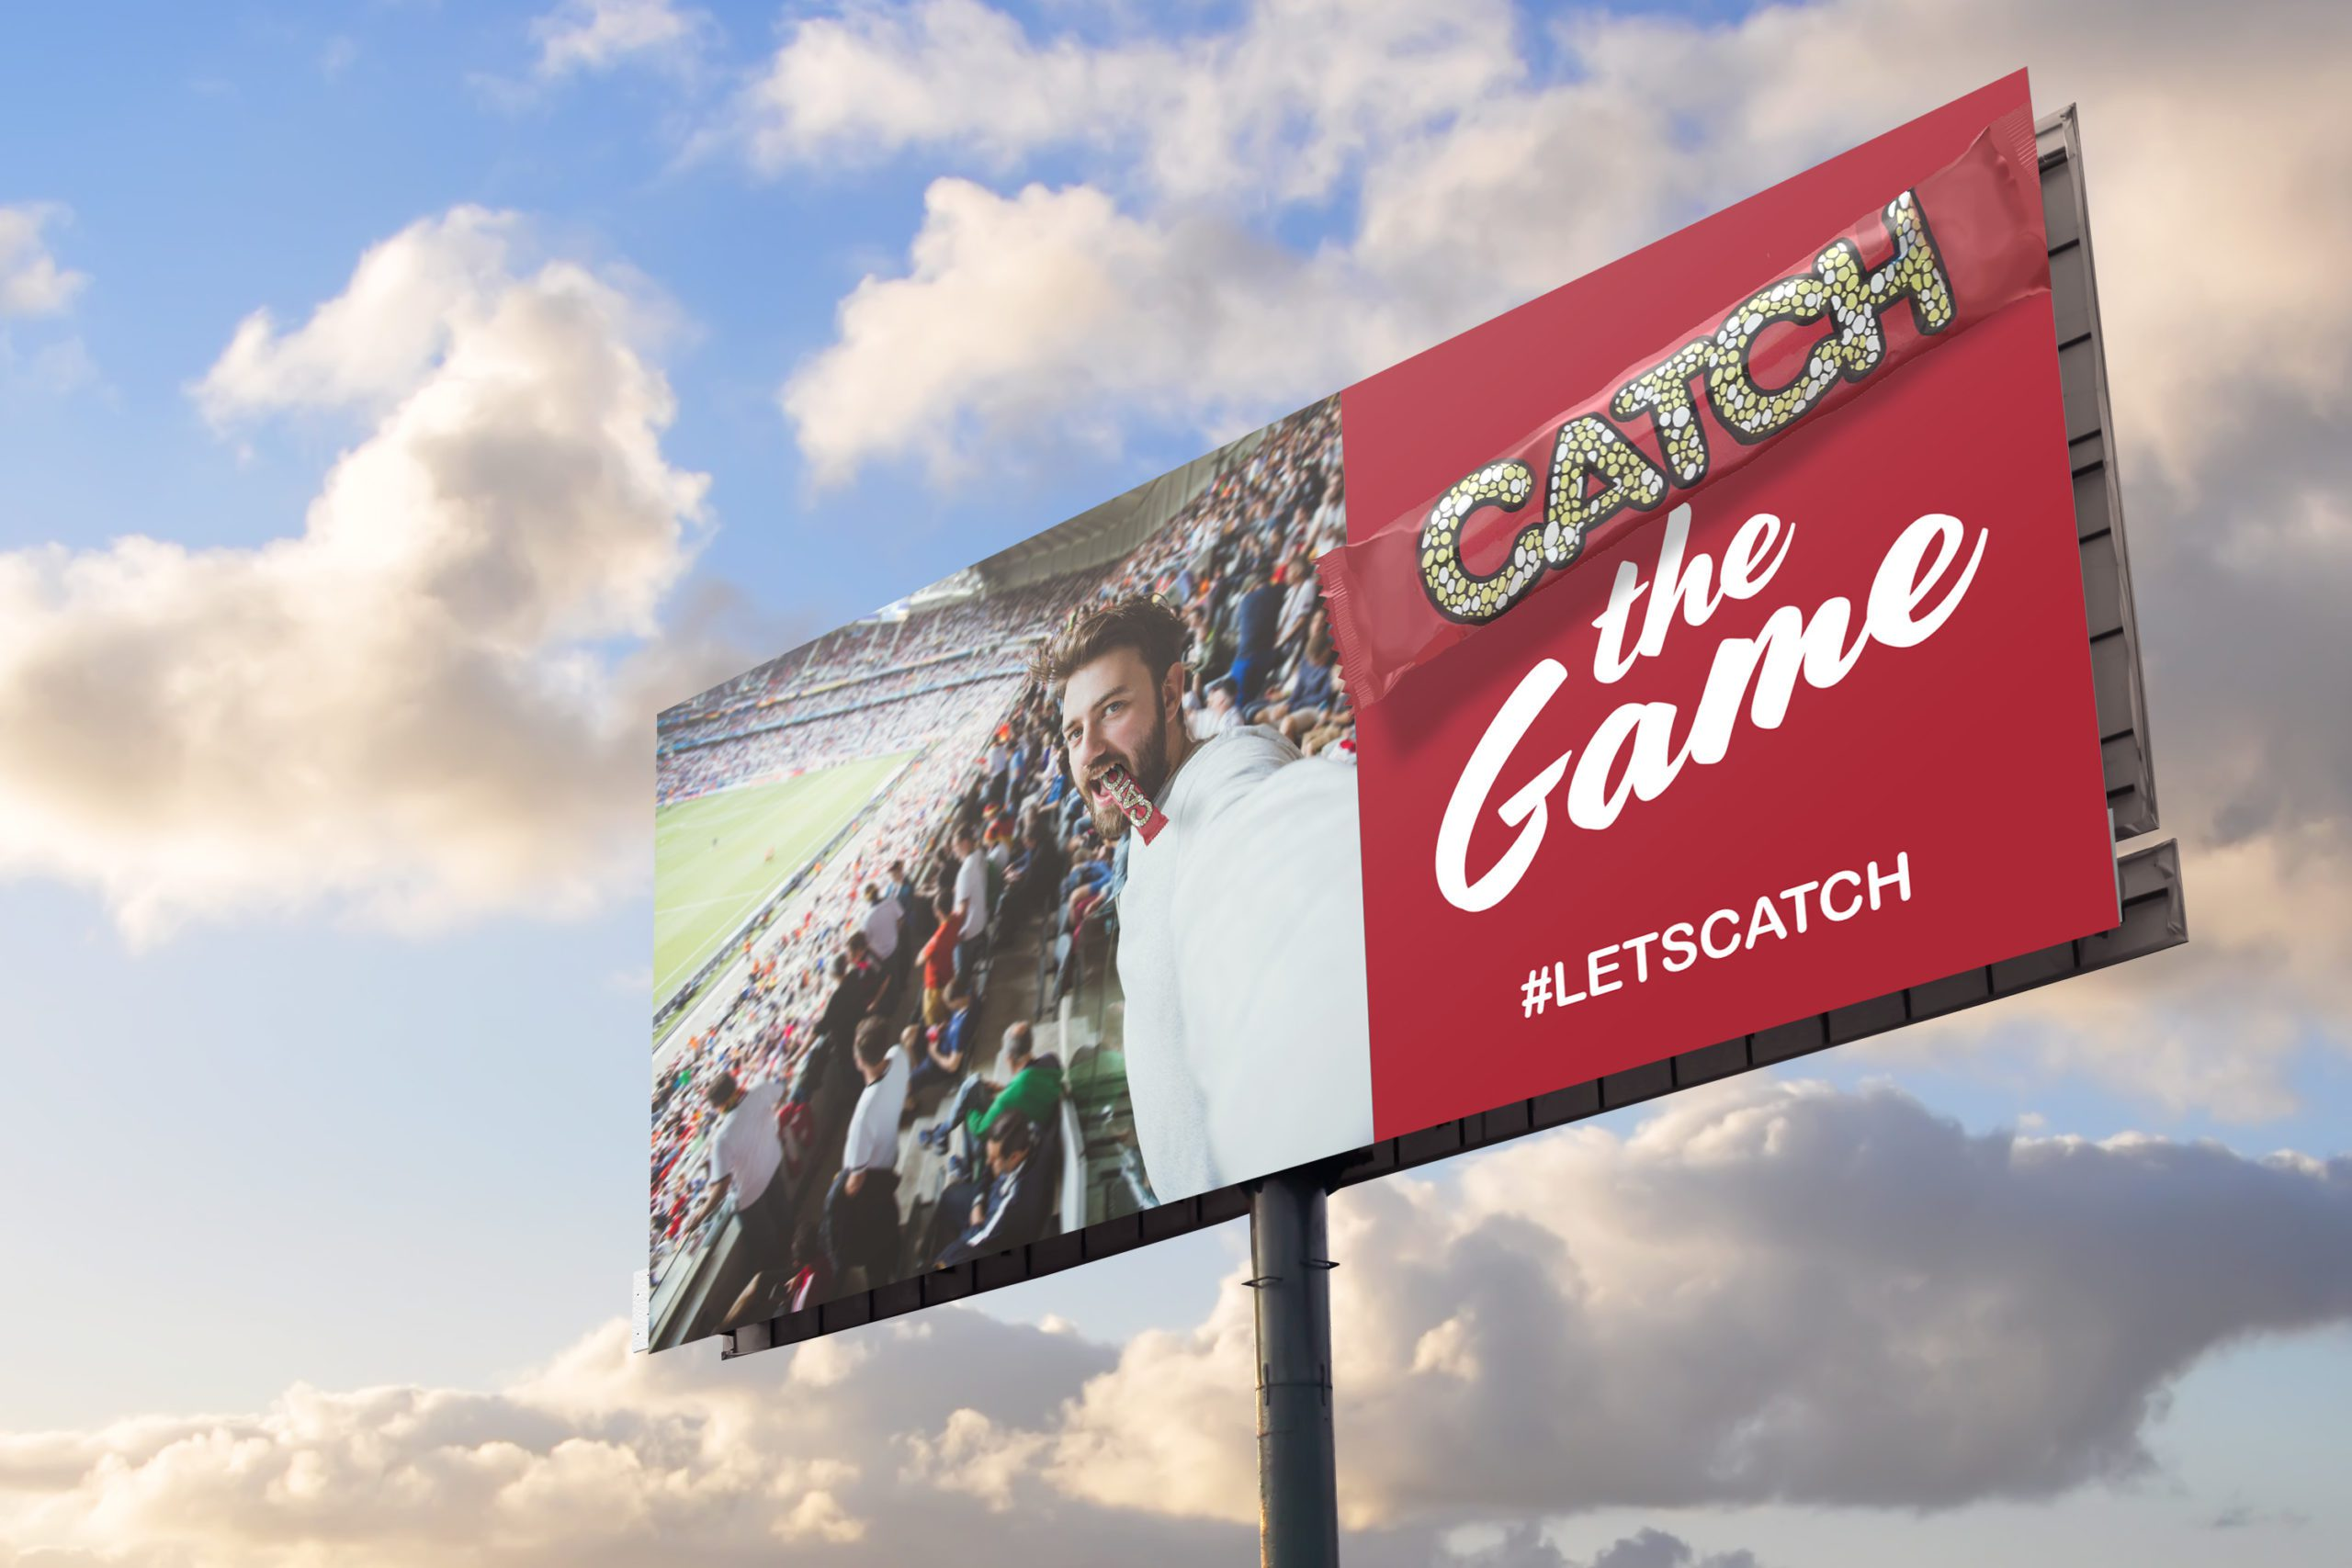 Catch Lets Catch Campaign C7 Creative.com